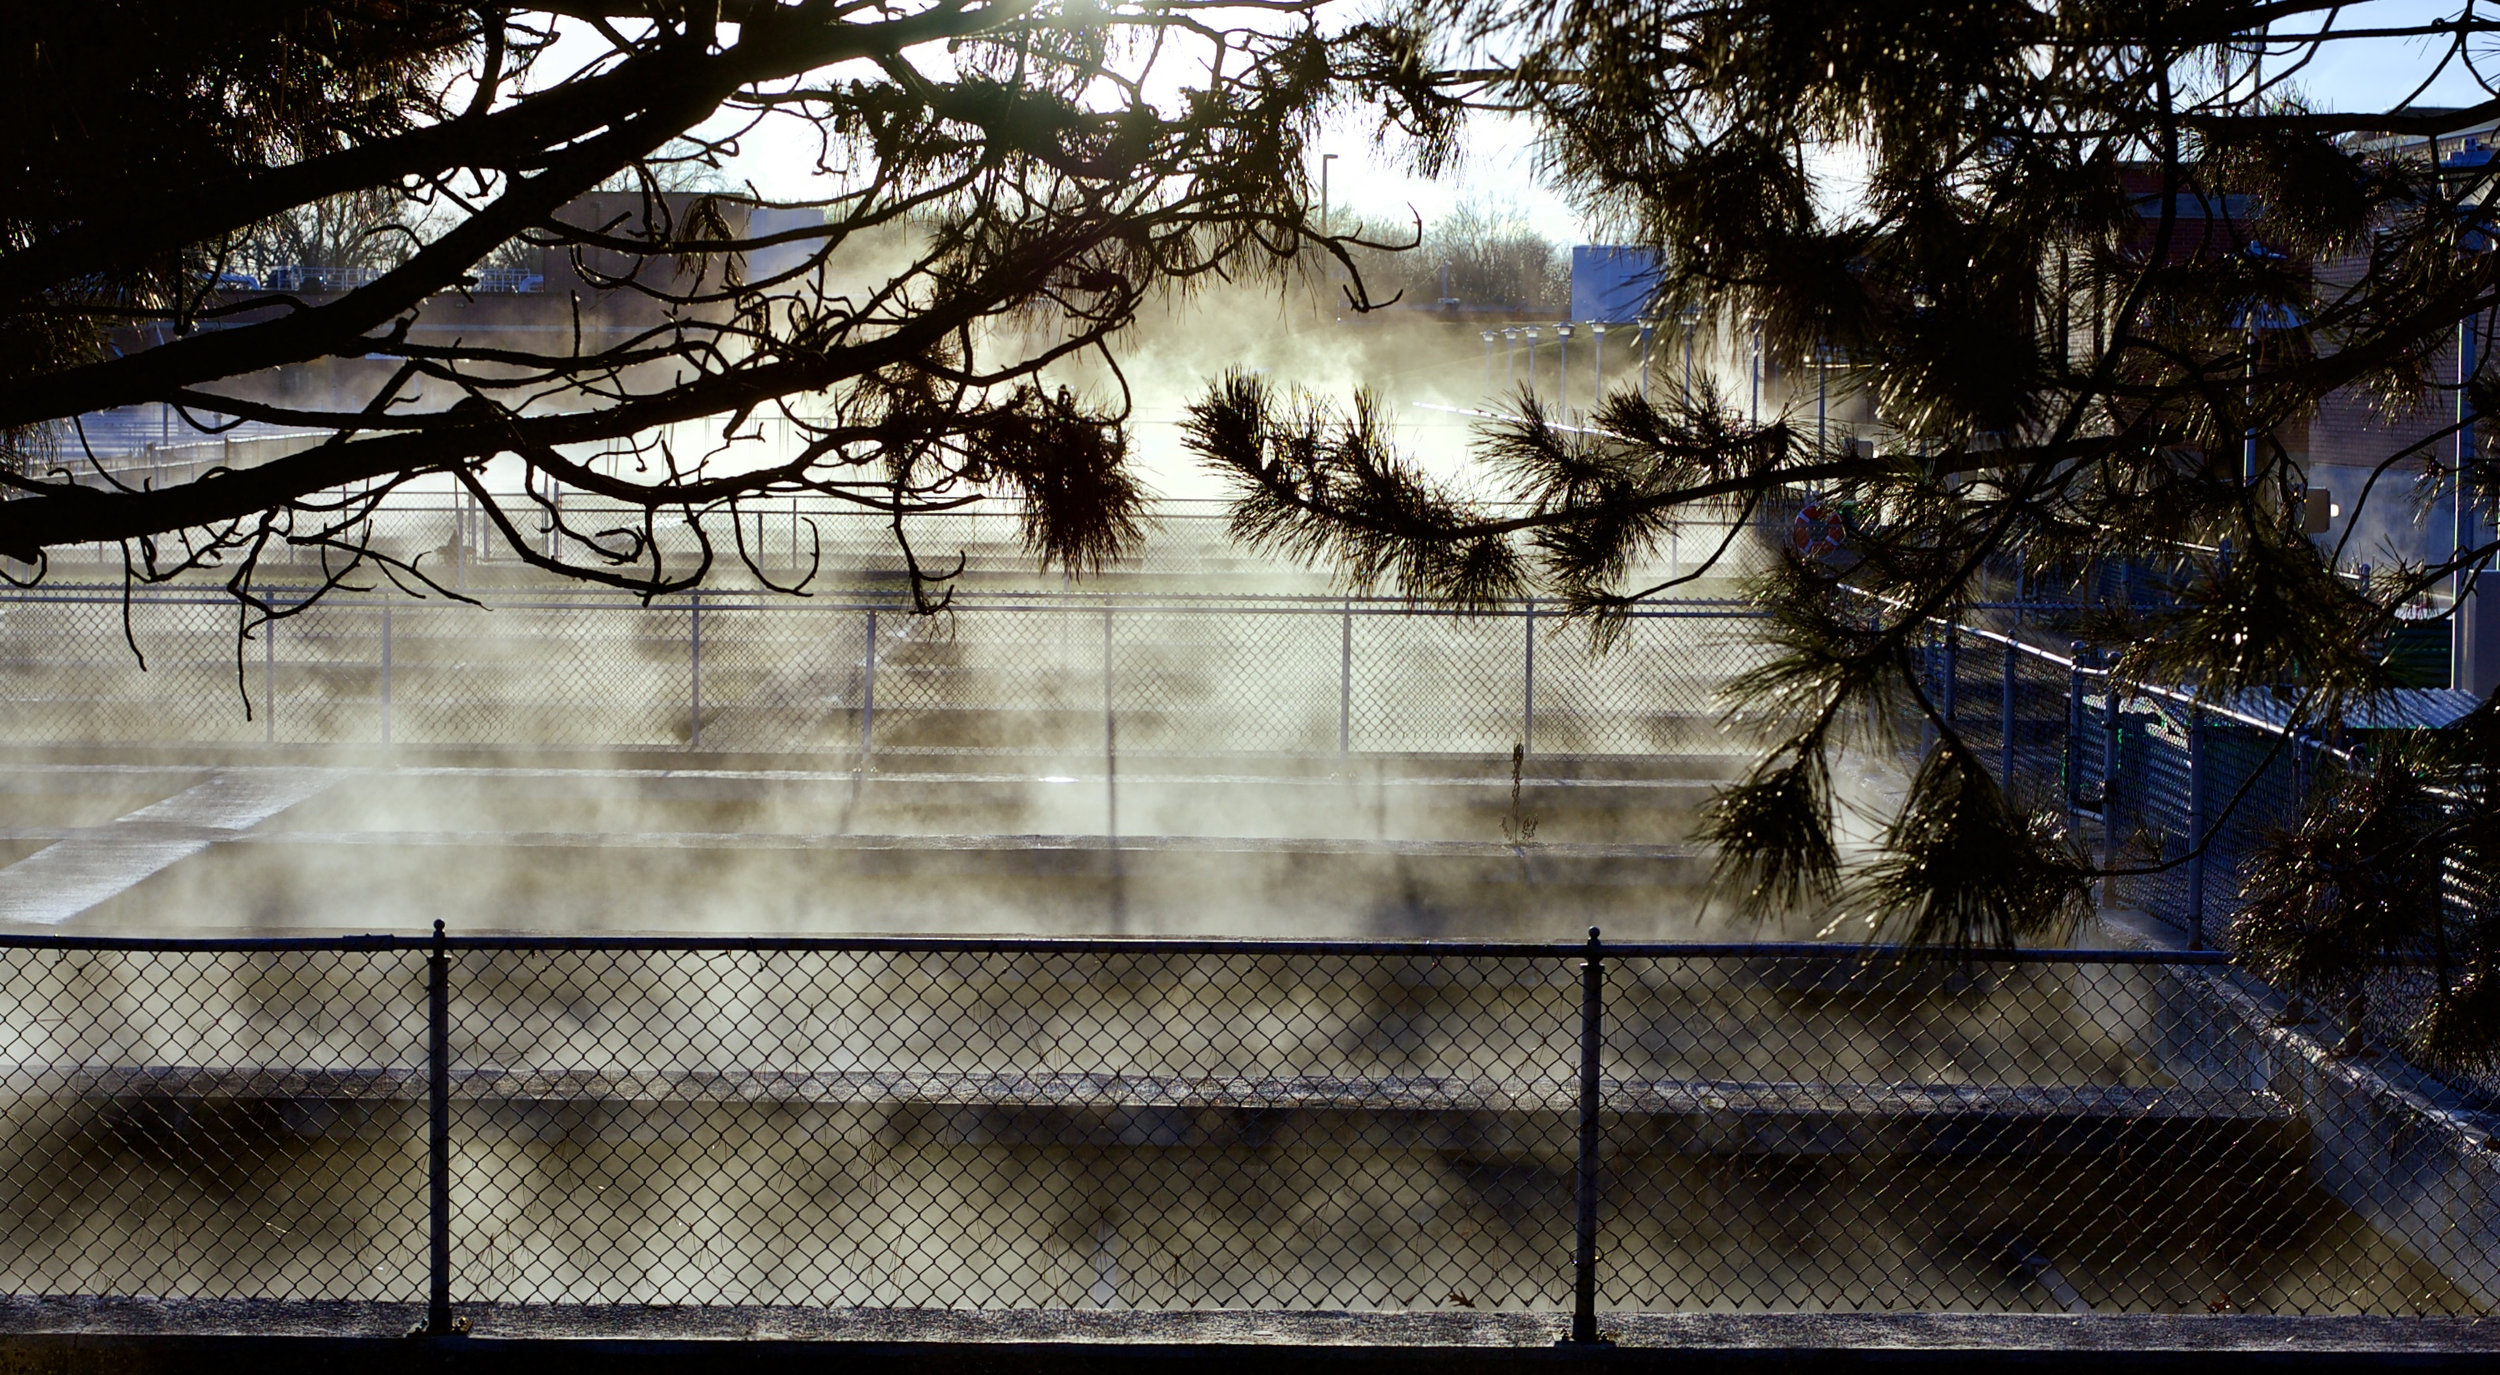 Cold Mist. Madison, Wisconsin. January 2017. © William D. Walker